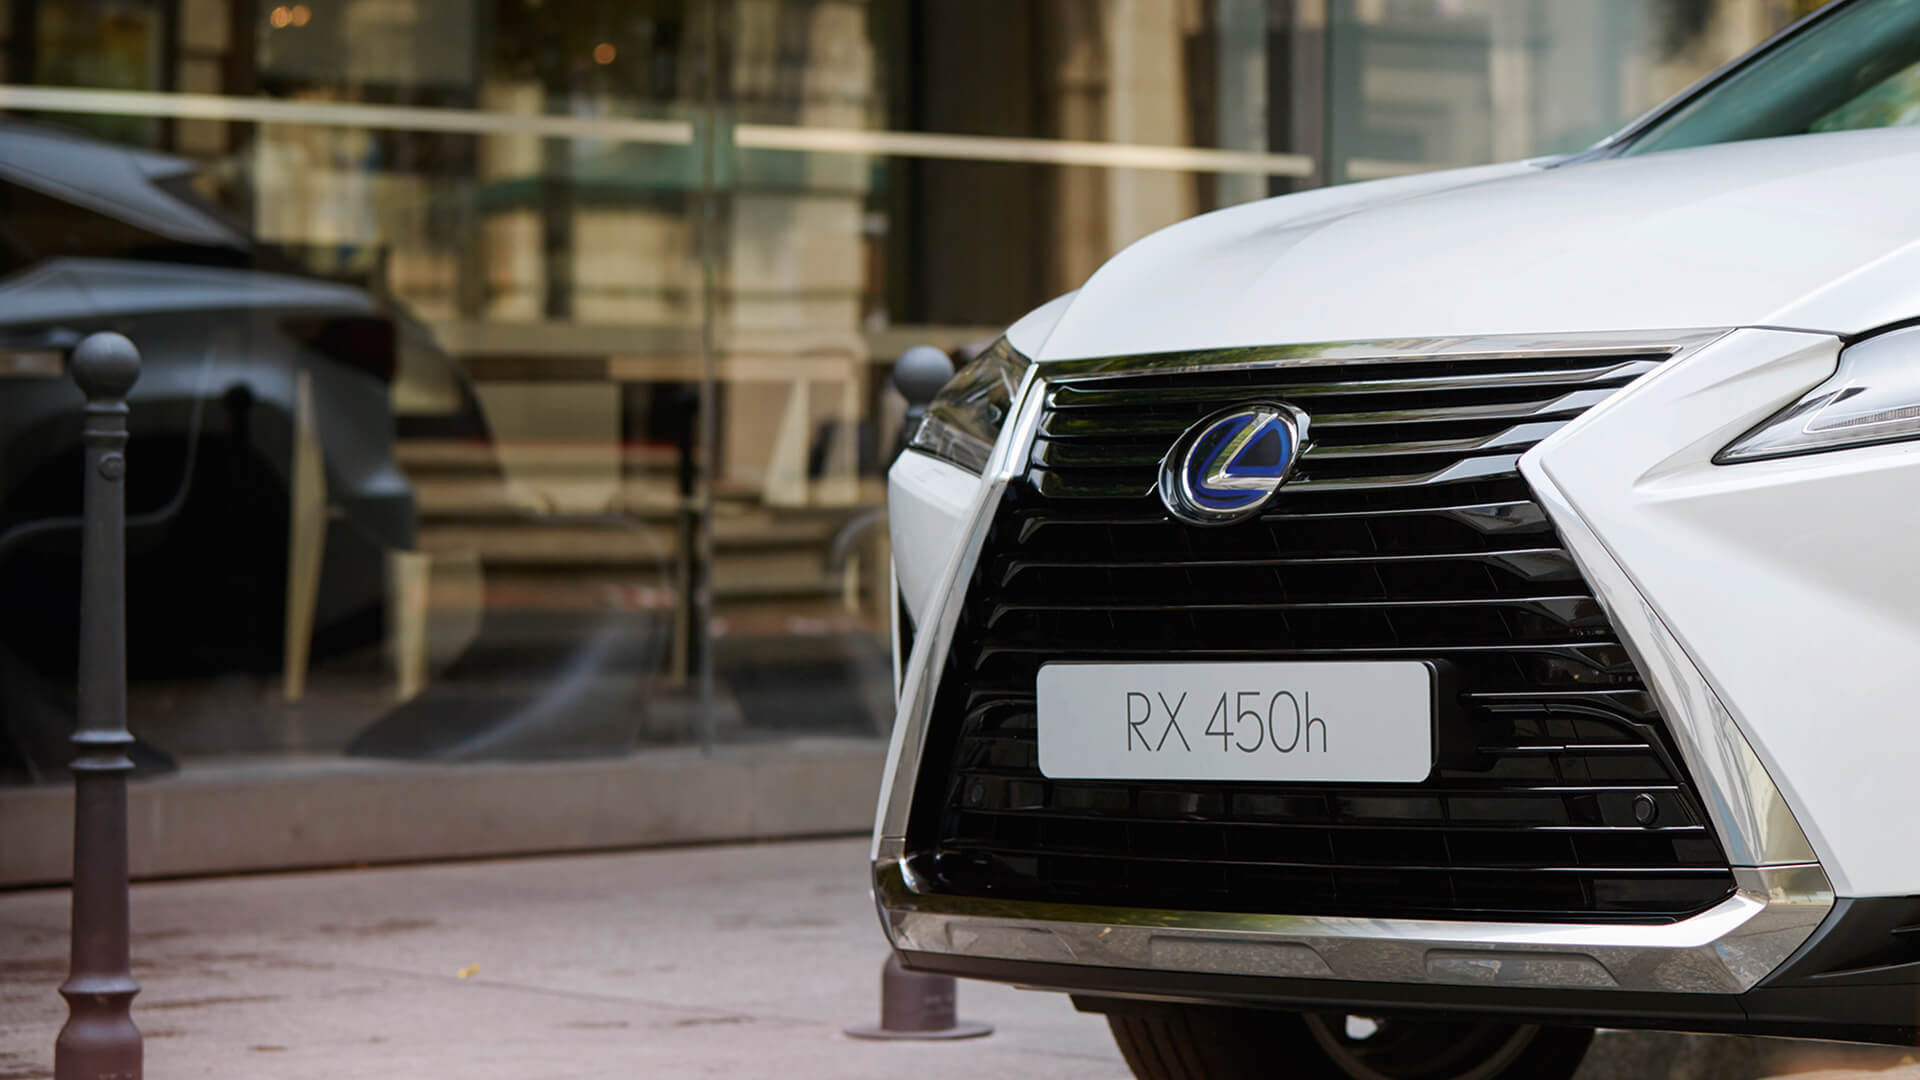 2018 lexus rx l features spindle grille